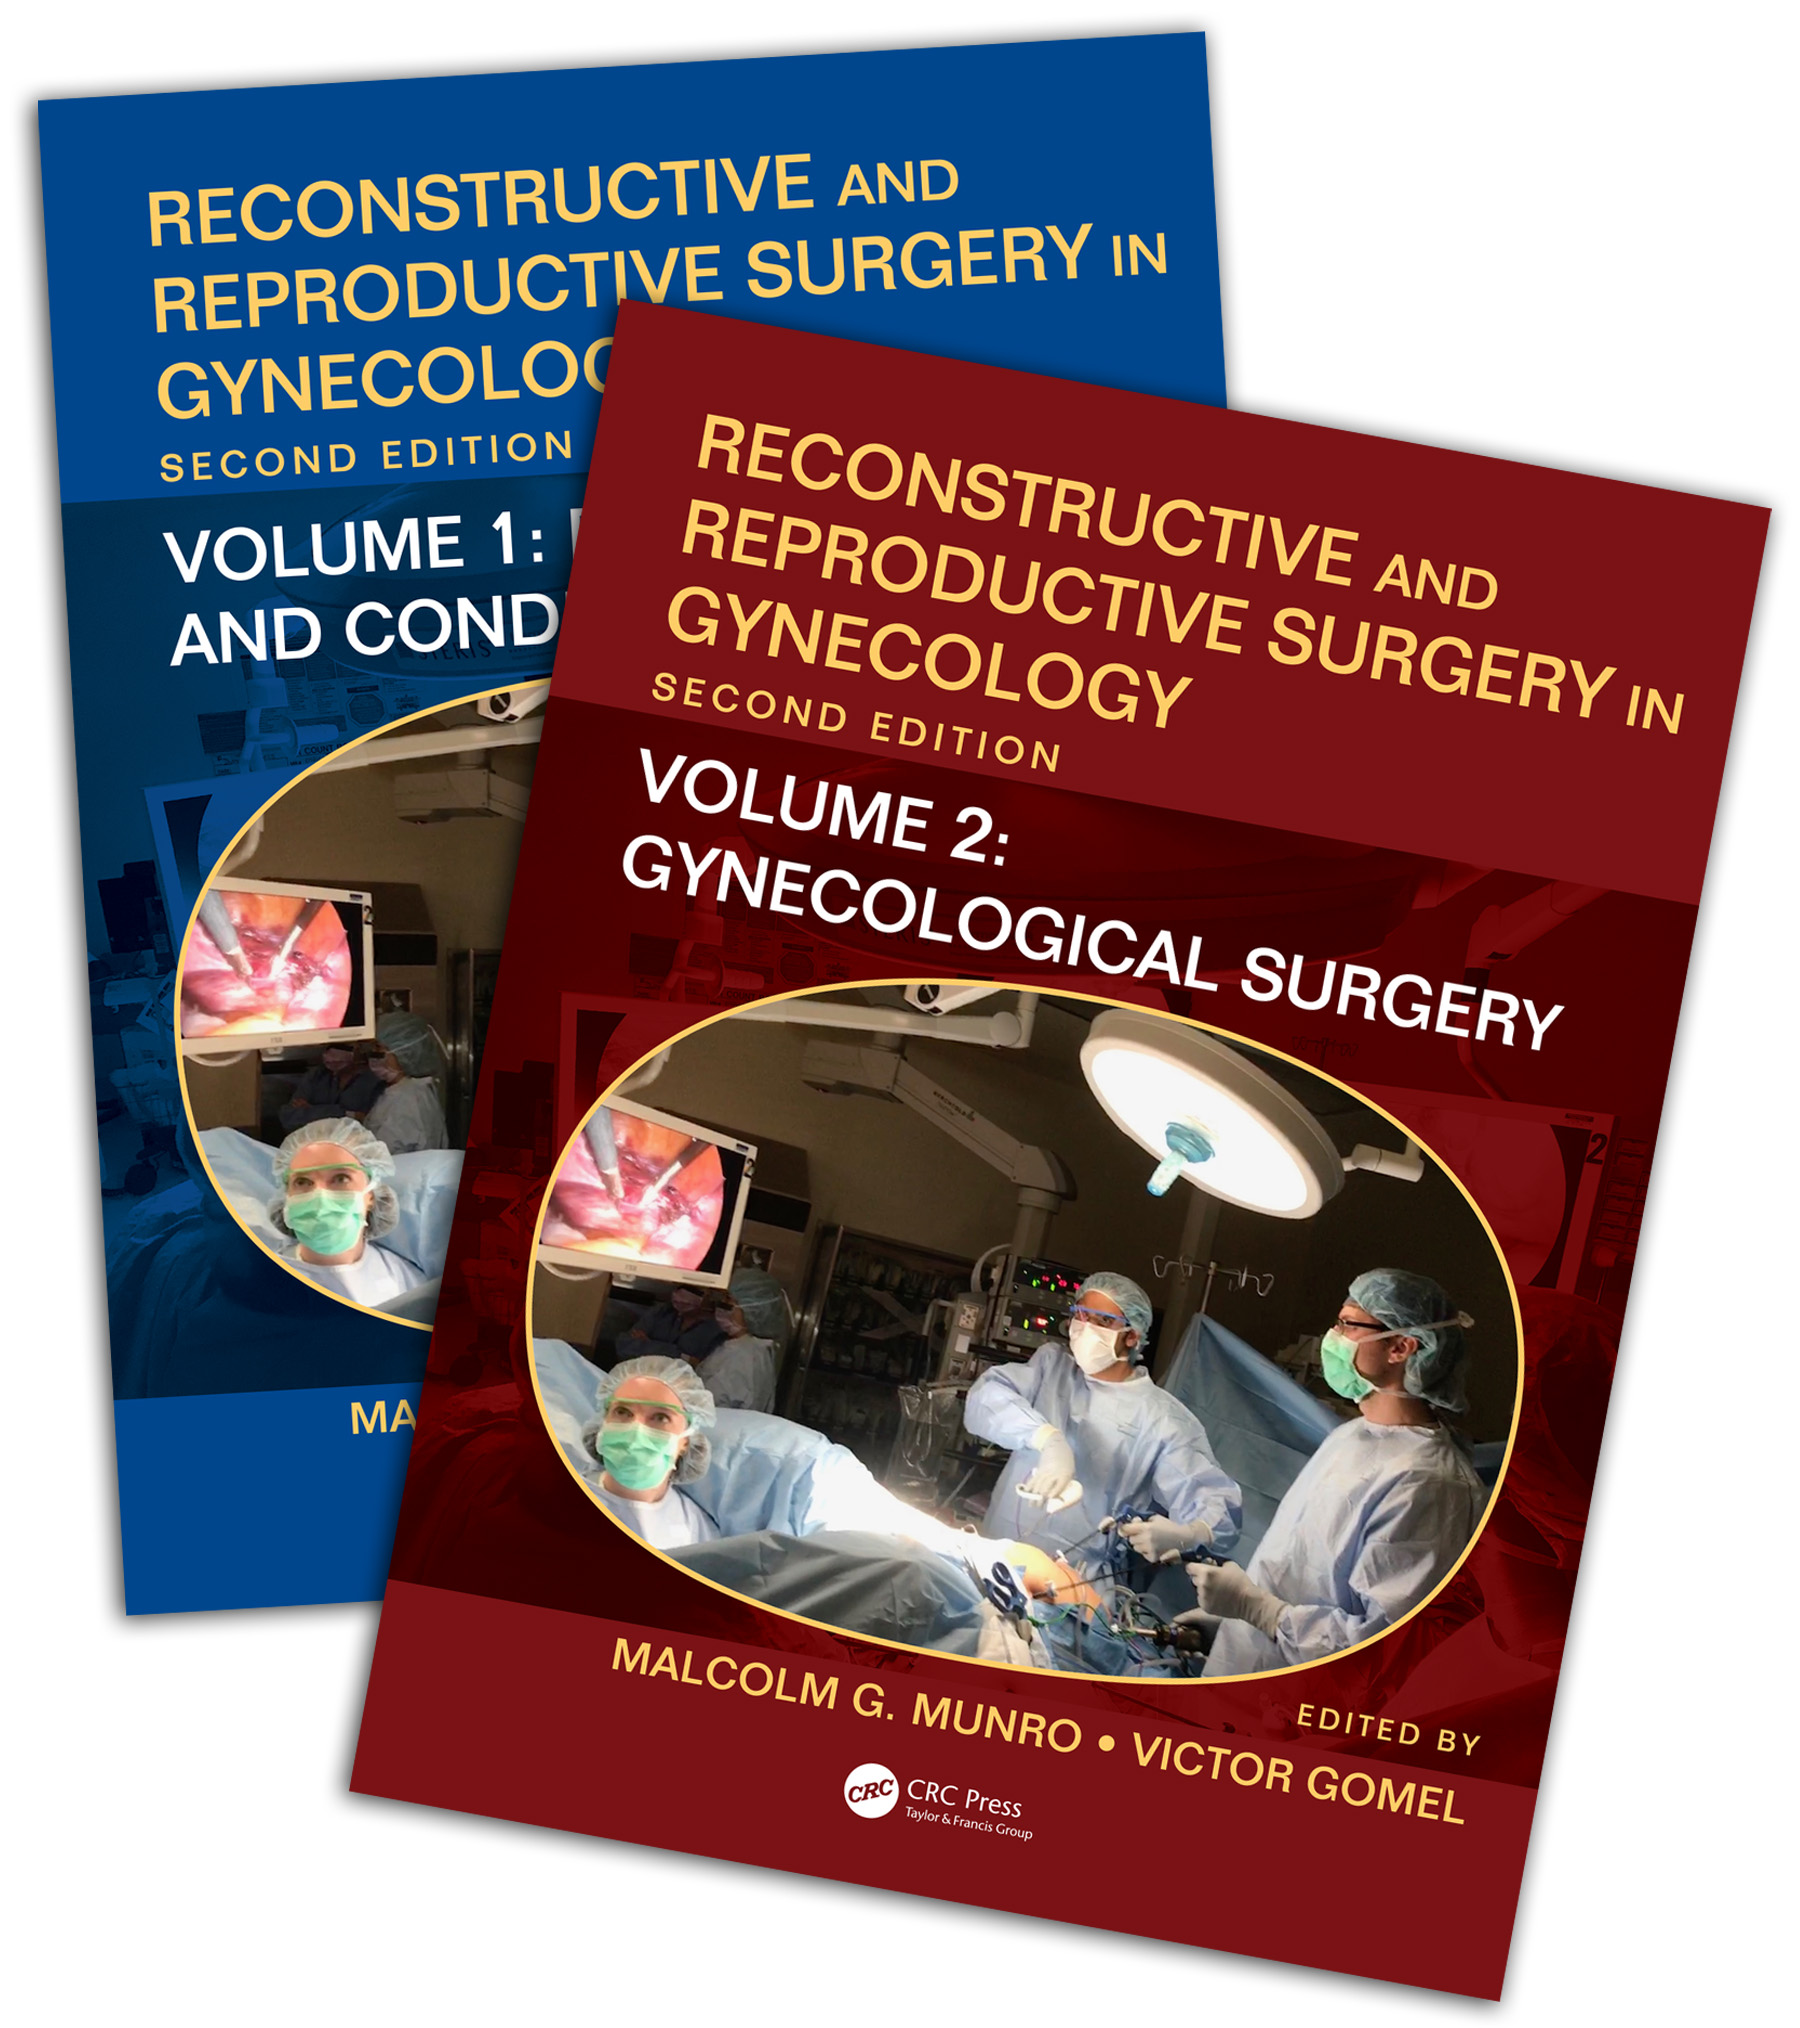 Reconstructive and Reproductive Surgery in Gynecology, Second Edition: Two Volume Set book cover